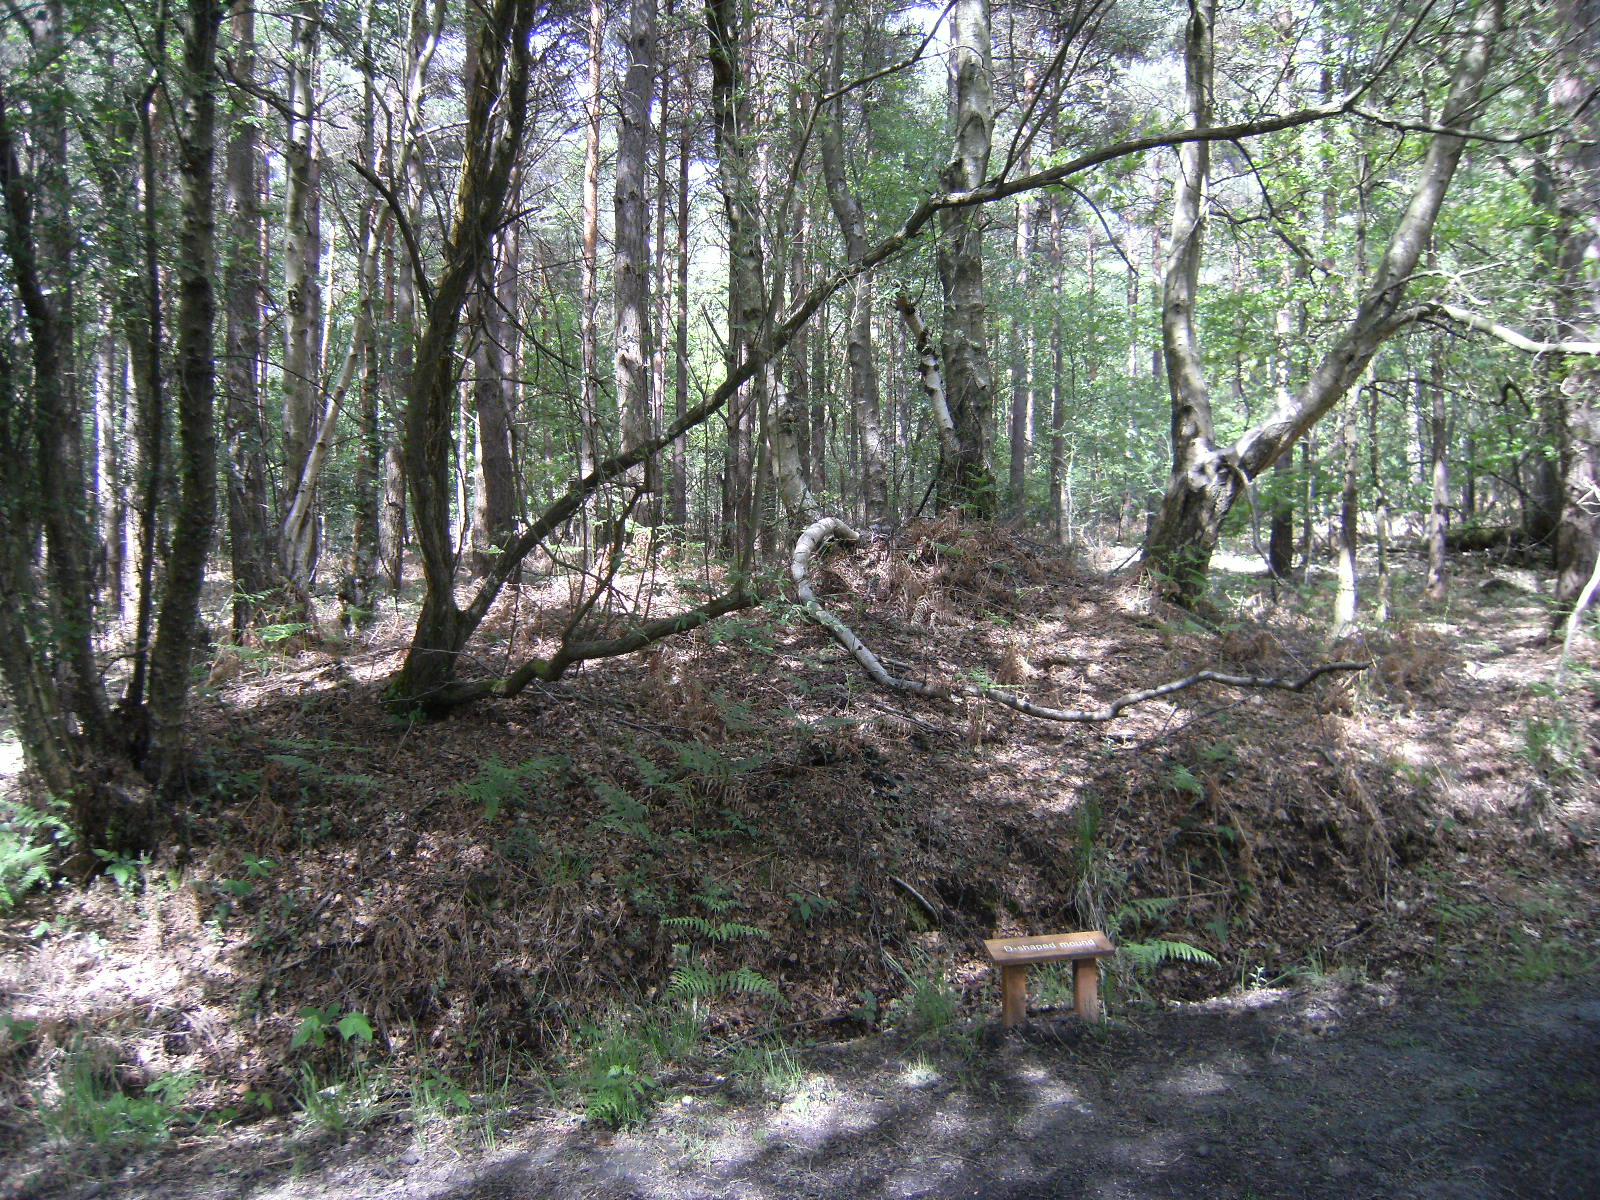 DSCF7828 'D-shaped mound' in Broadwater Warren